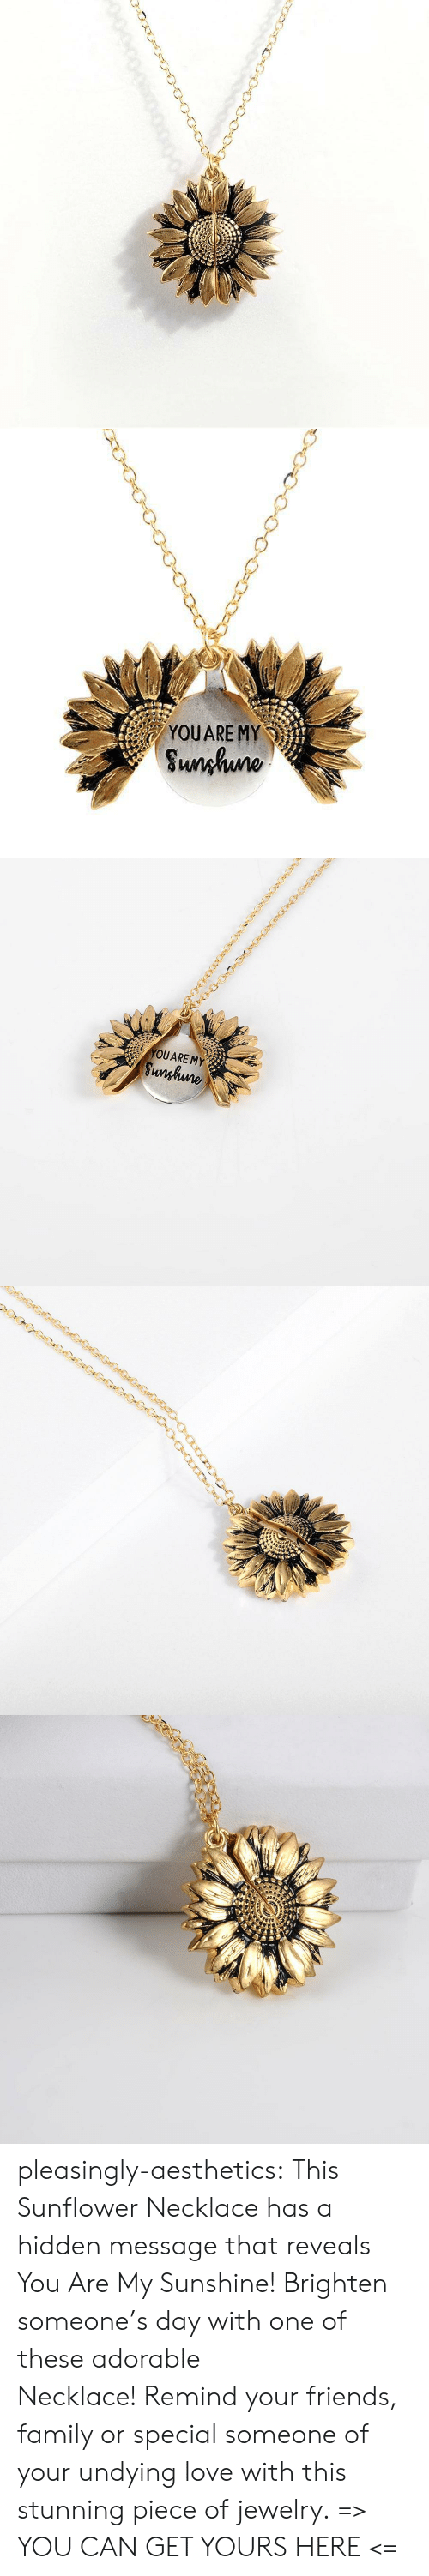 My Sunshine: YOUARE MY  Sunhuno   YOUARE MY  Sunghune pleasingly-aesthetics: This Sunflower Necklace has a hidden message that reveals You Are My Sunshine! Brighten someone's day with one of these adorable Necklace!Remind your friends, family or special someone of your undying love with this stunning piece of jewelry. => YOU CAN GET YOURS HERE <=